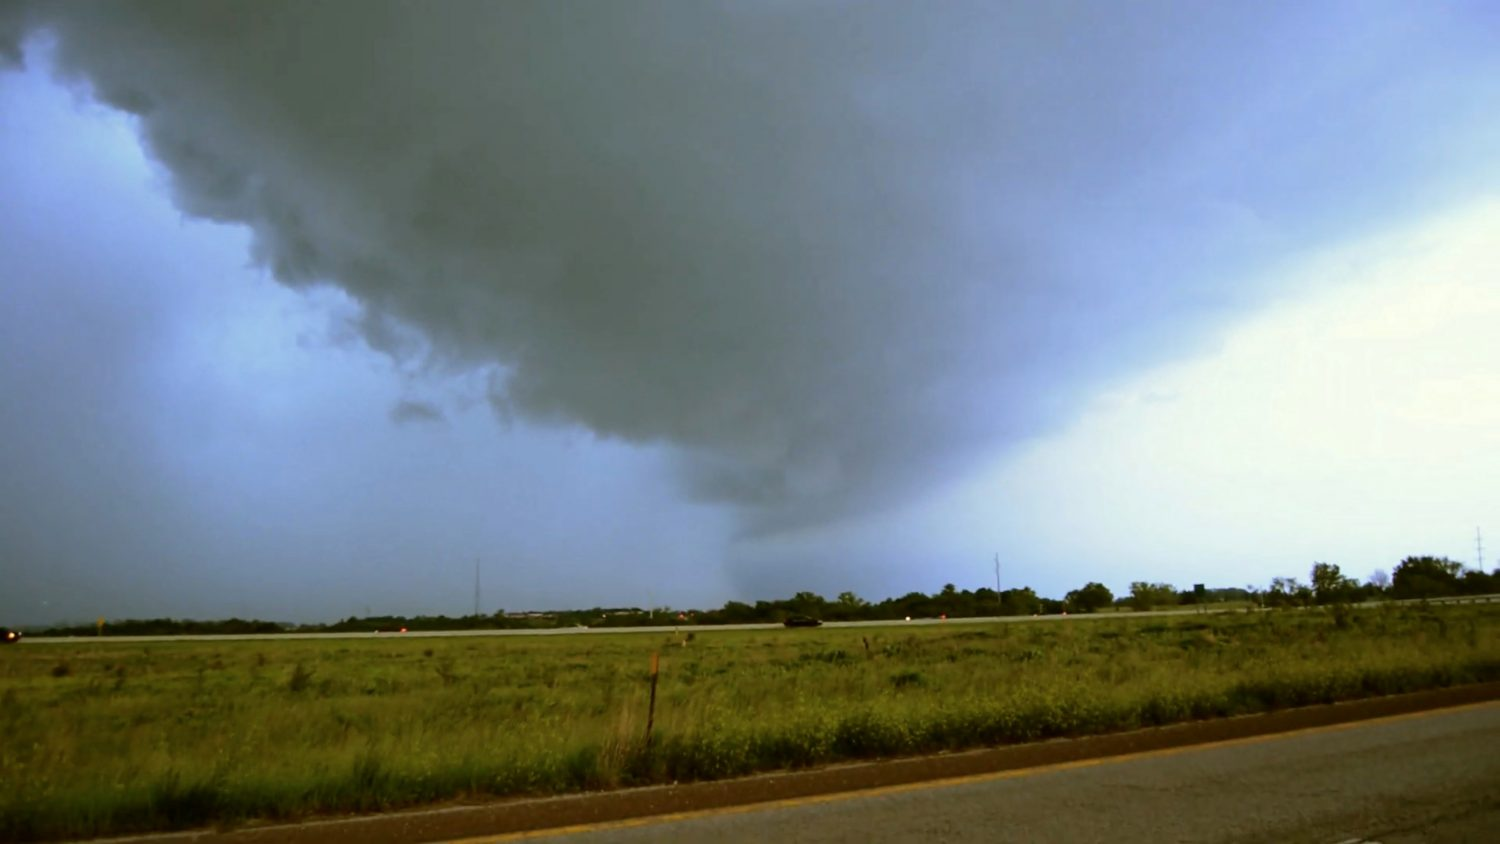 A storm cloud is seen in Shawnee, Kansas, U.S. in this still image taken from a May 28, 2019 video obtained from social media. Daniel Hogue/via REUTERS